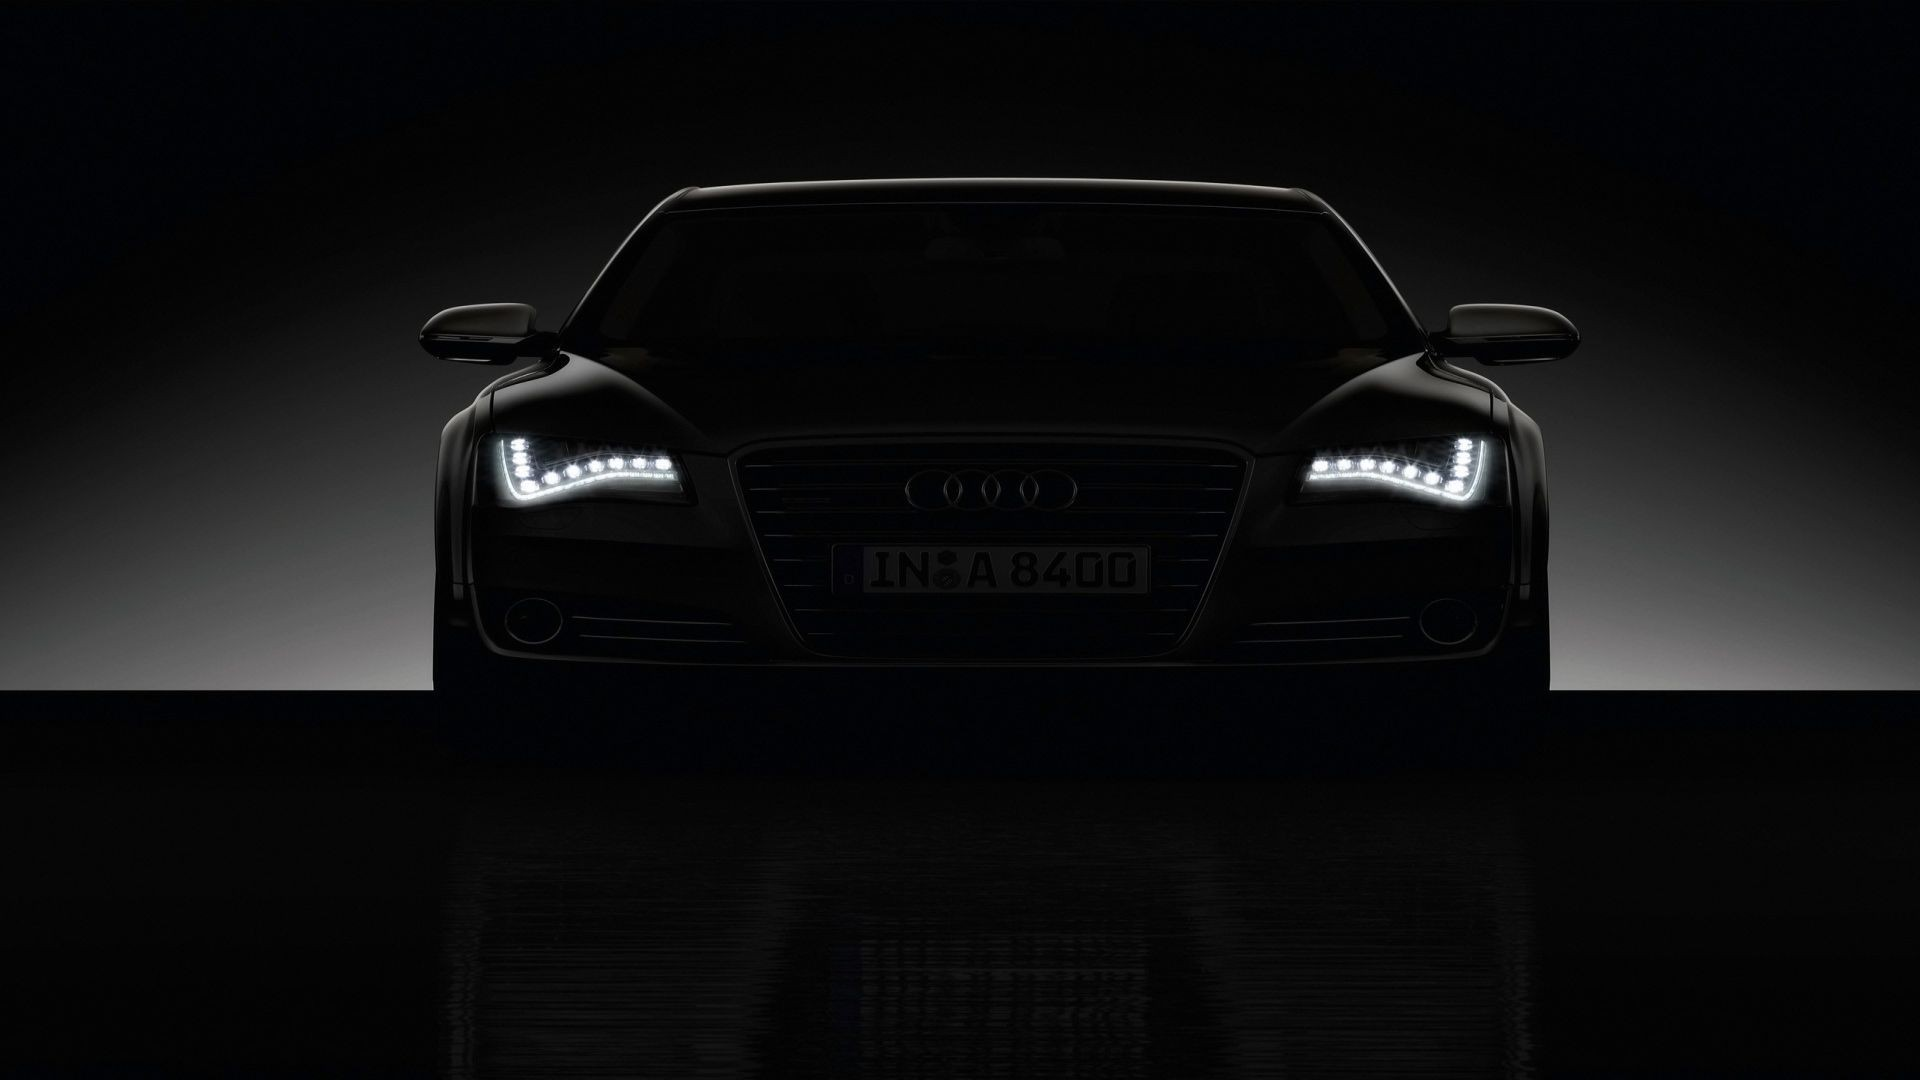 Sports Car Wallpapers High Resolution Audi Headlights Hd Cars 4k Wallpapers Images